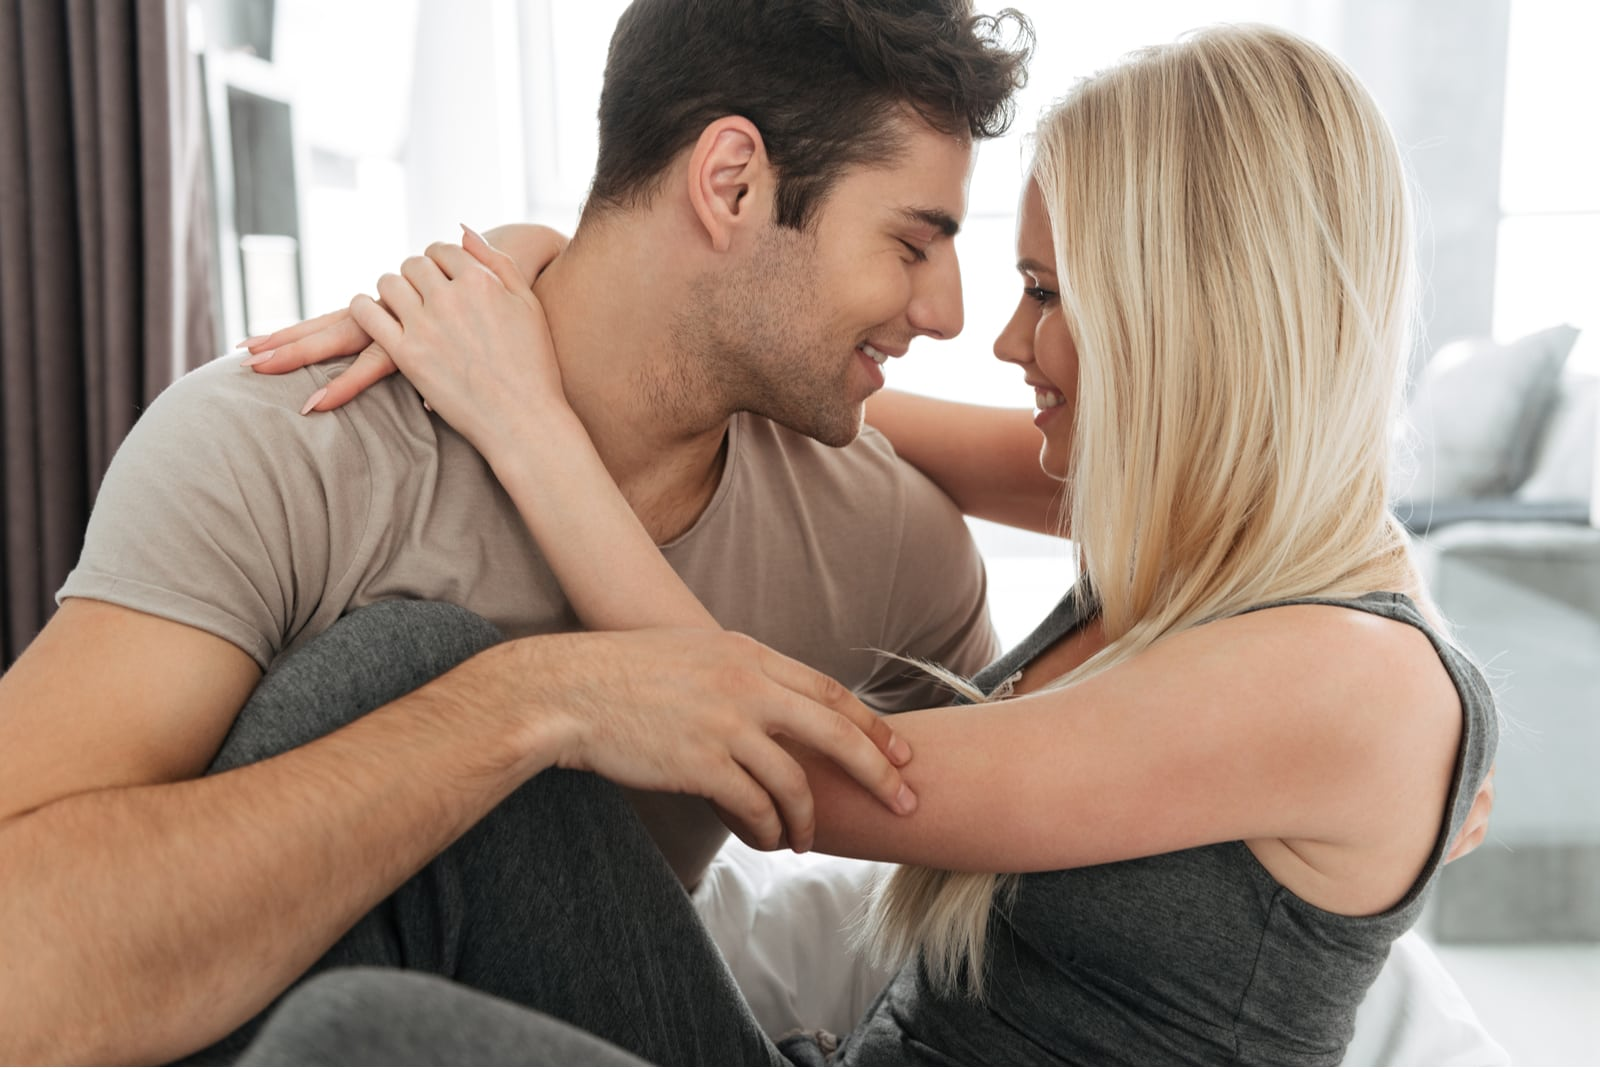 the attractive couple hugs passionately and looks at each other in the house